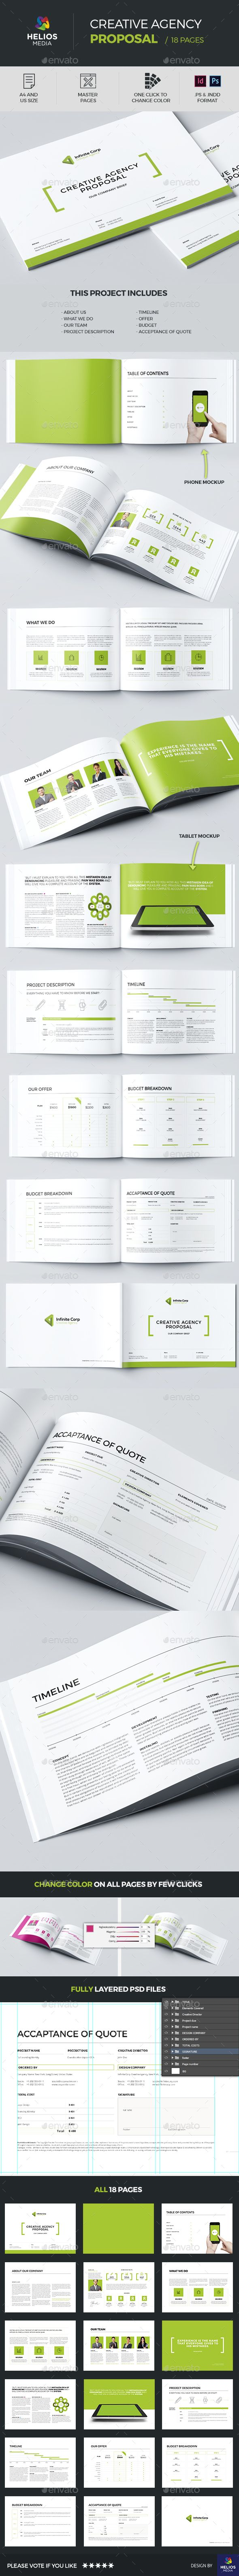 Proposal Template Horizontal by HELIOSMEDIA Live